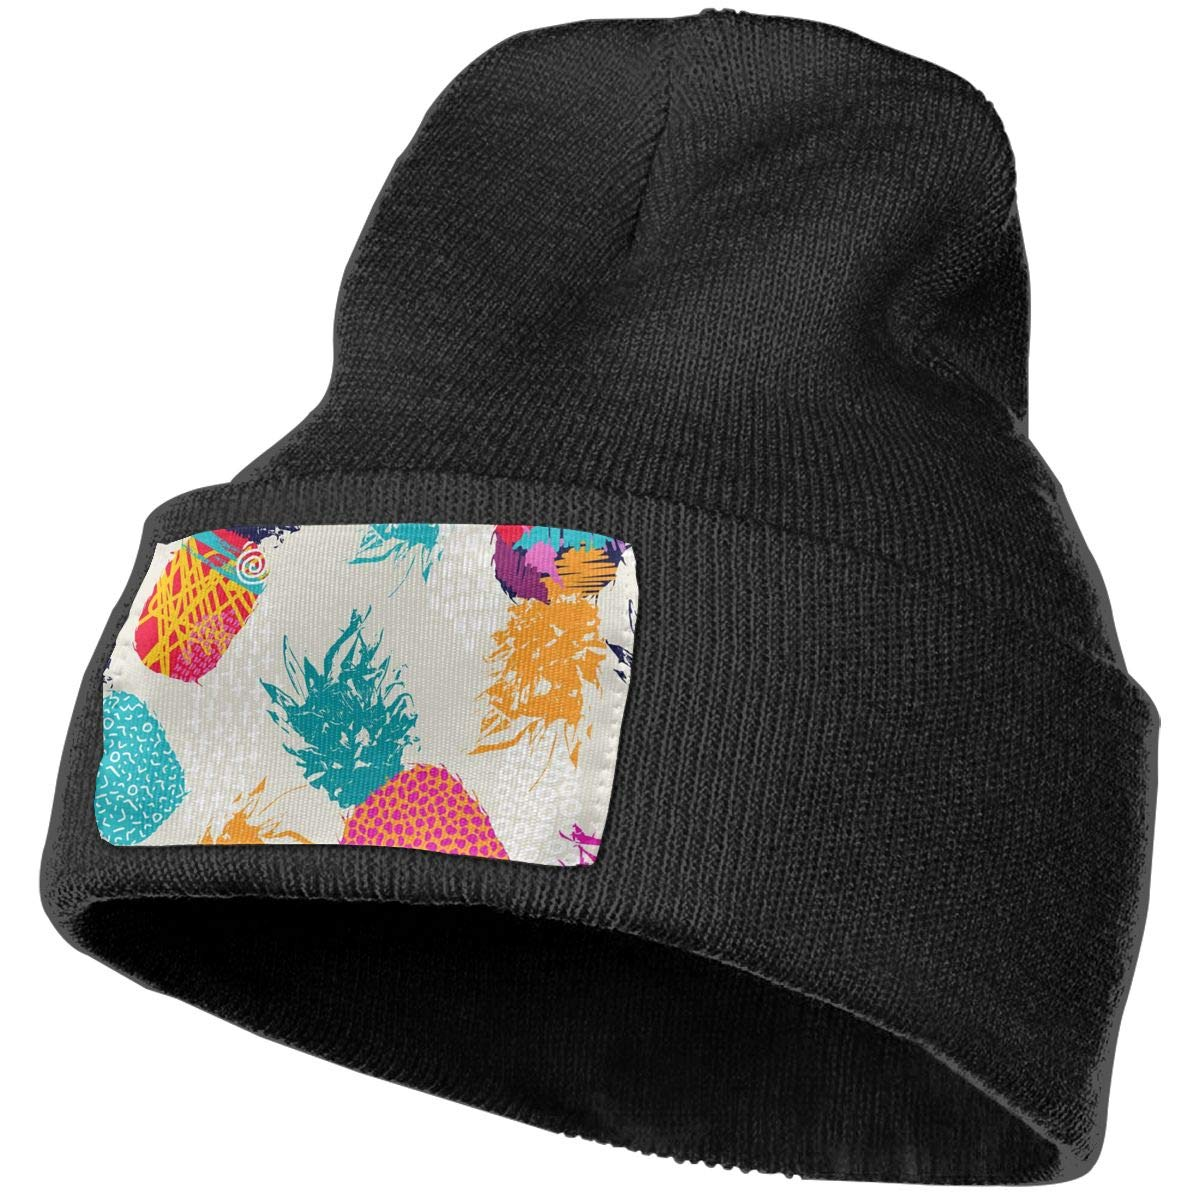 ONHIM Tropical Fruit Watercolor Pineapple Kids Men /& Women Winter Warm Knitting Beanie Hat Slouchy Streetwear Hats